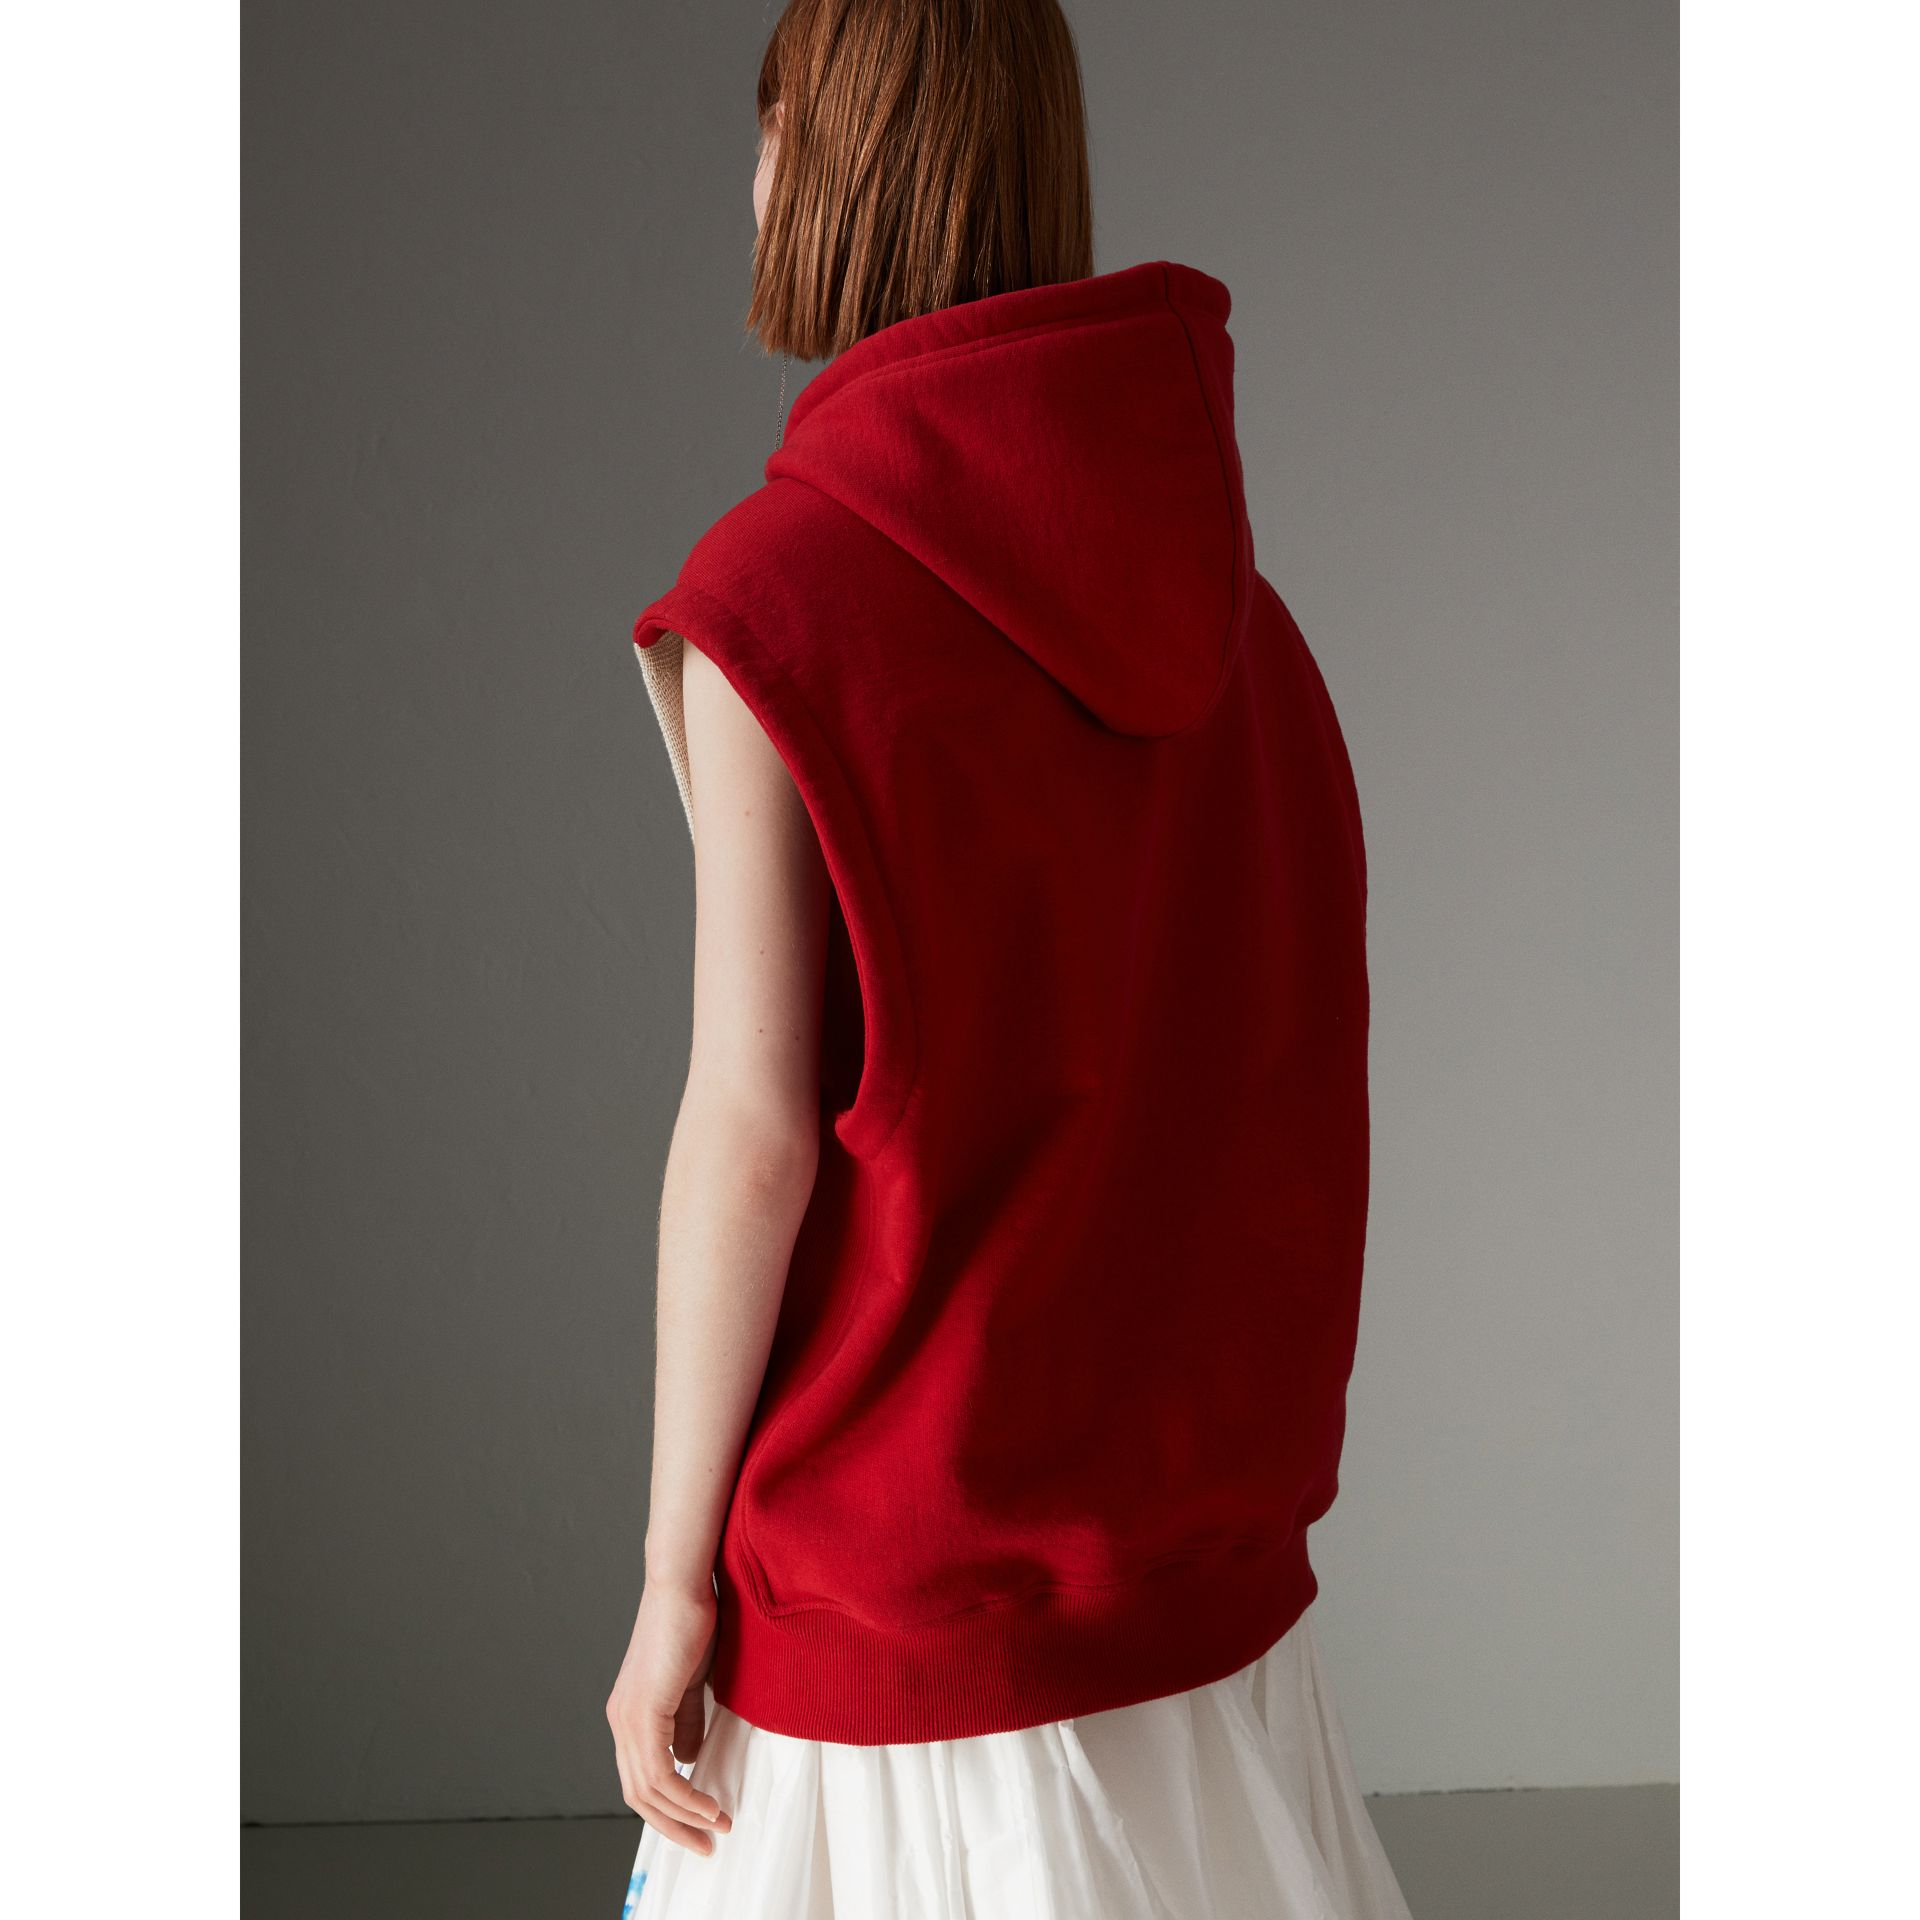 Raven Intarsia Sleeveless Hoodie in Red - Women | Burberry - gallery image 2